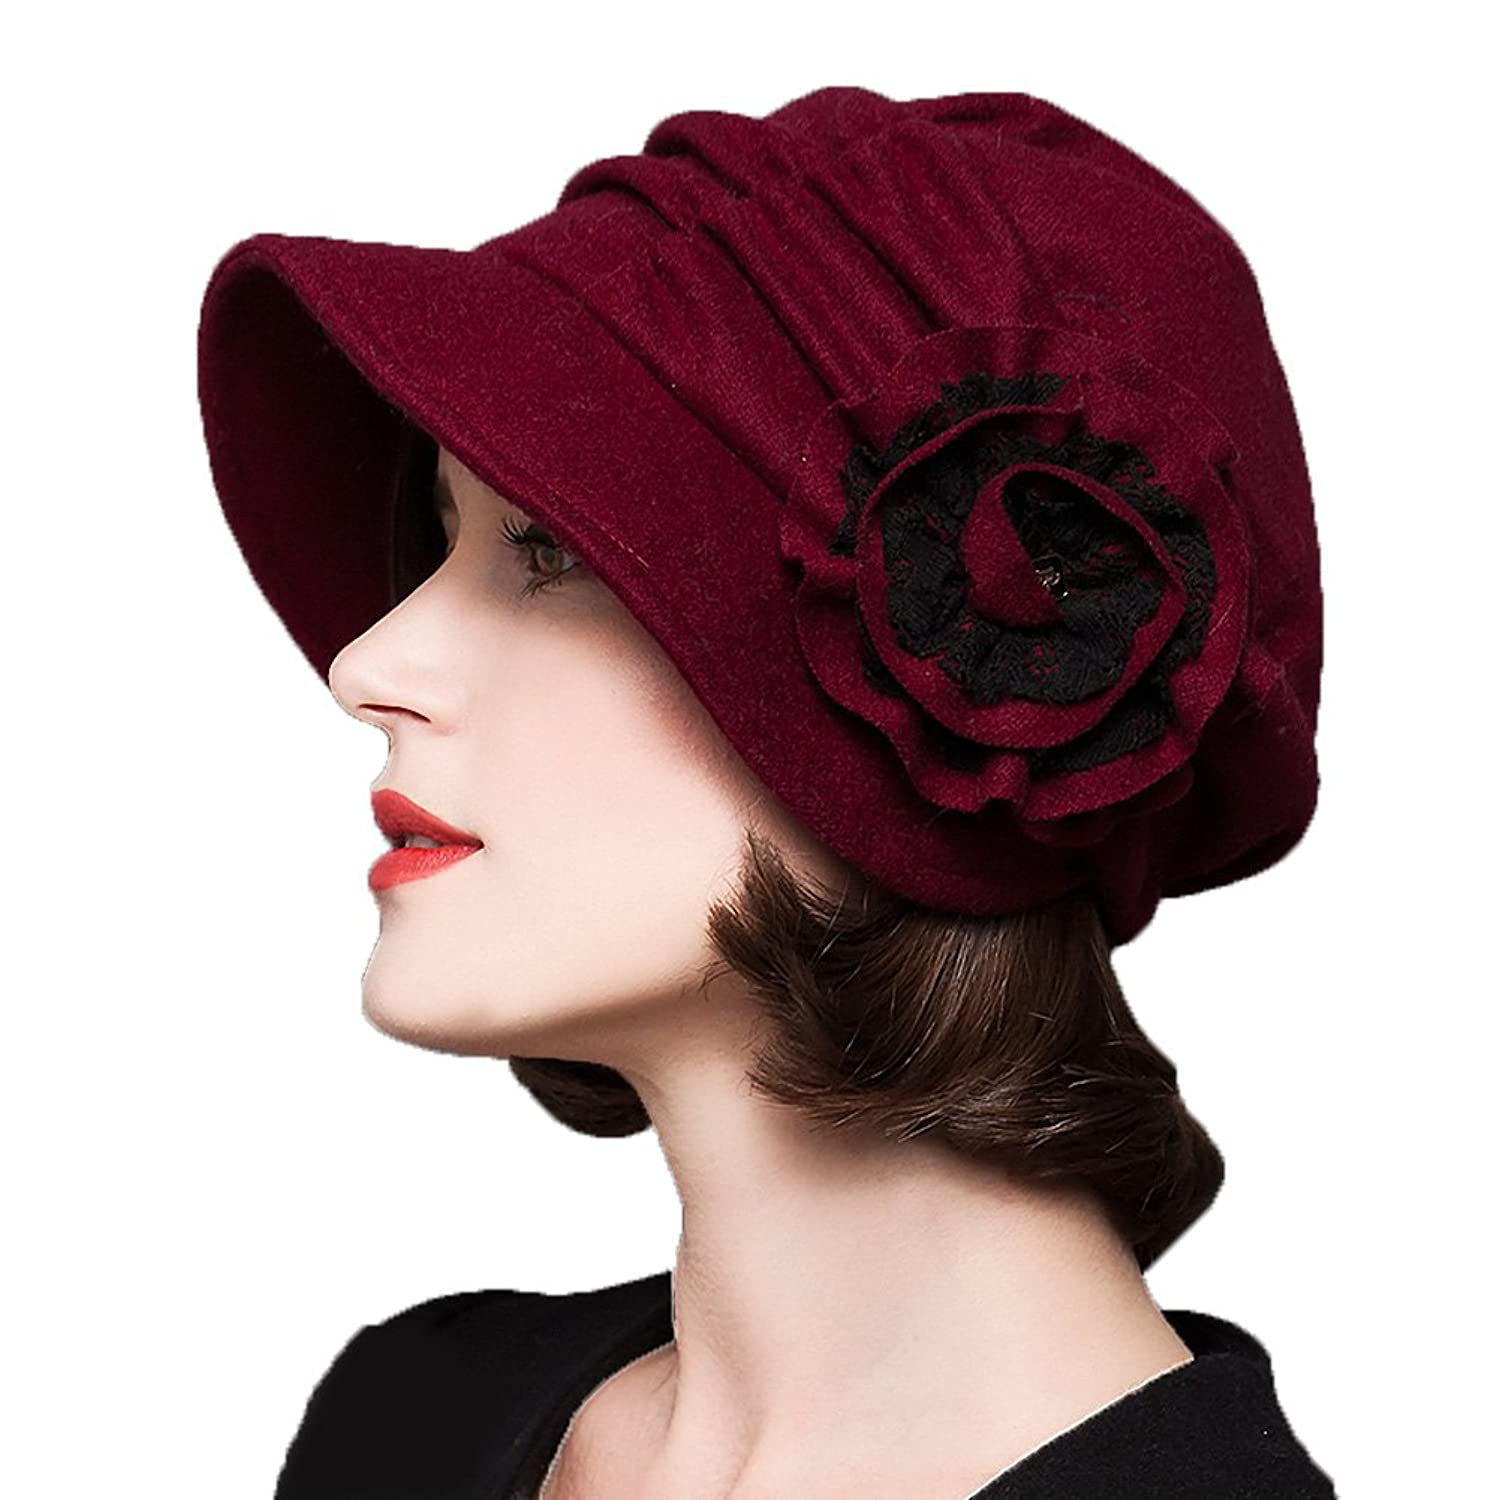 Edwardian Hats, Titanic Hats, Tea Party Hats Decorative Flowers Wool Beret Maitose Trade Womens Decorative Flowers Wool Beret $28.40 AT vintagedancer.com